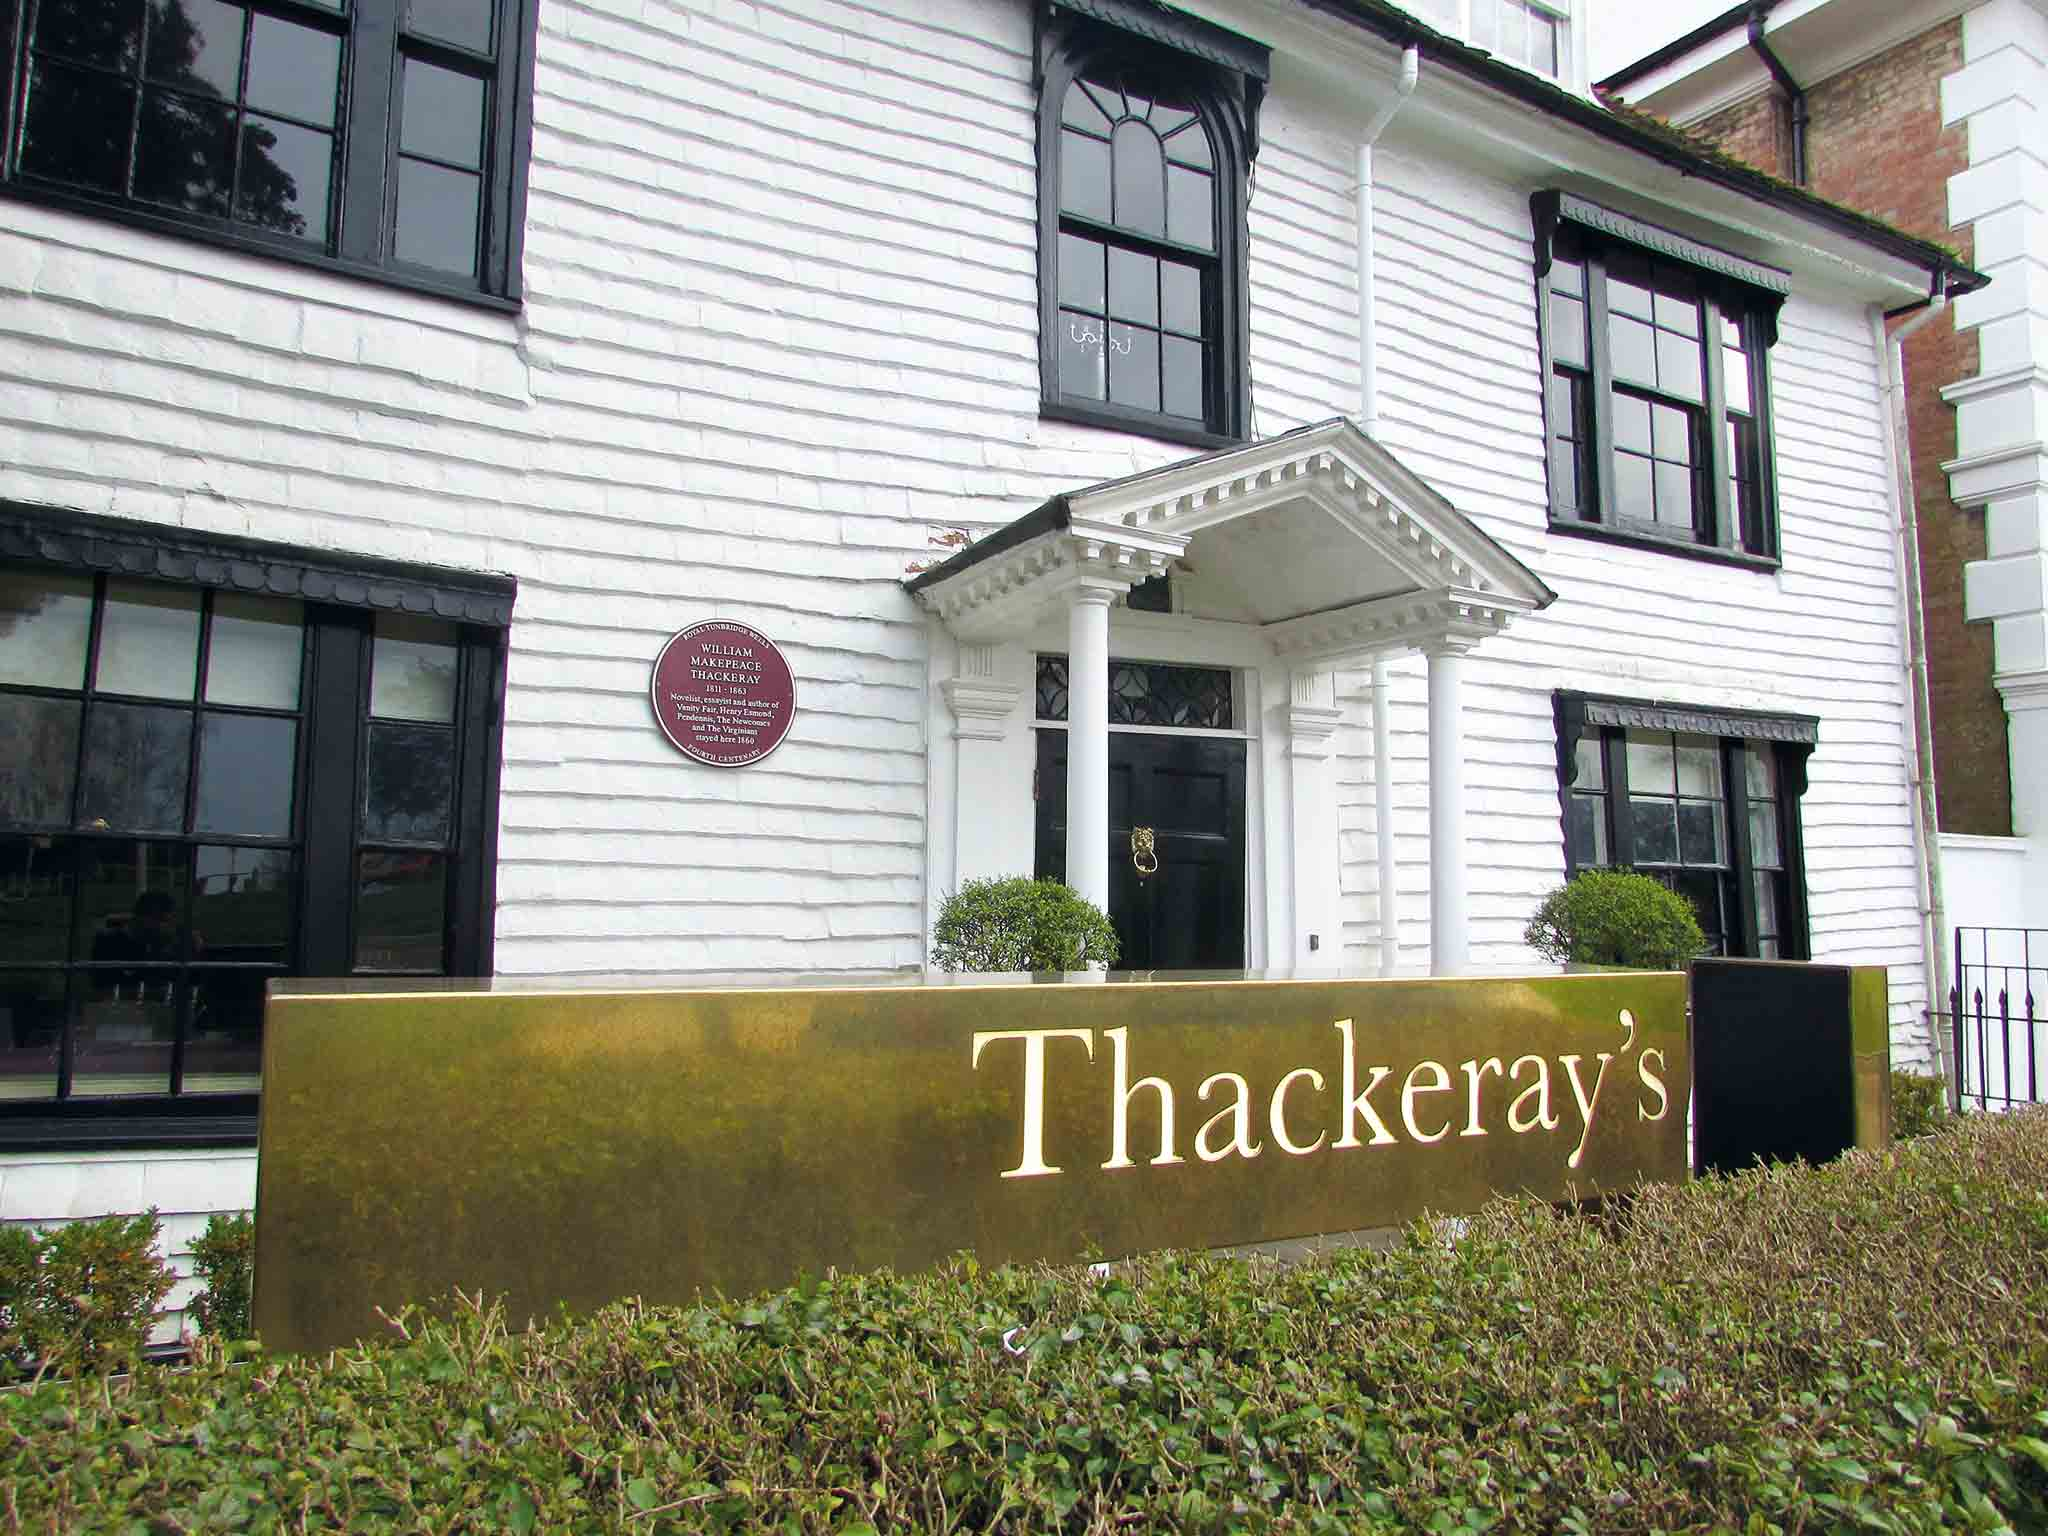 Thackeray's